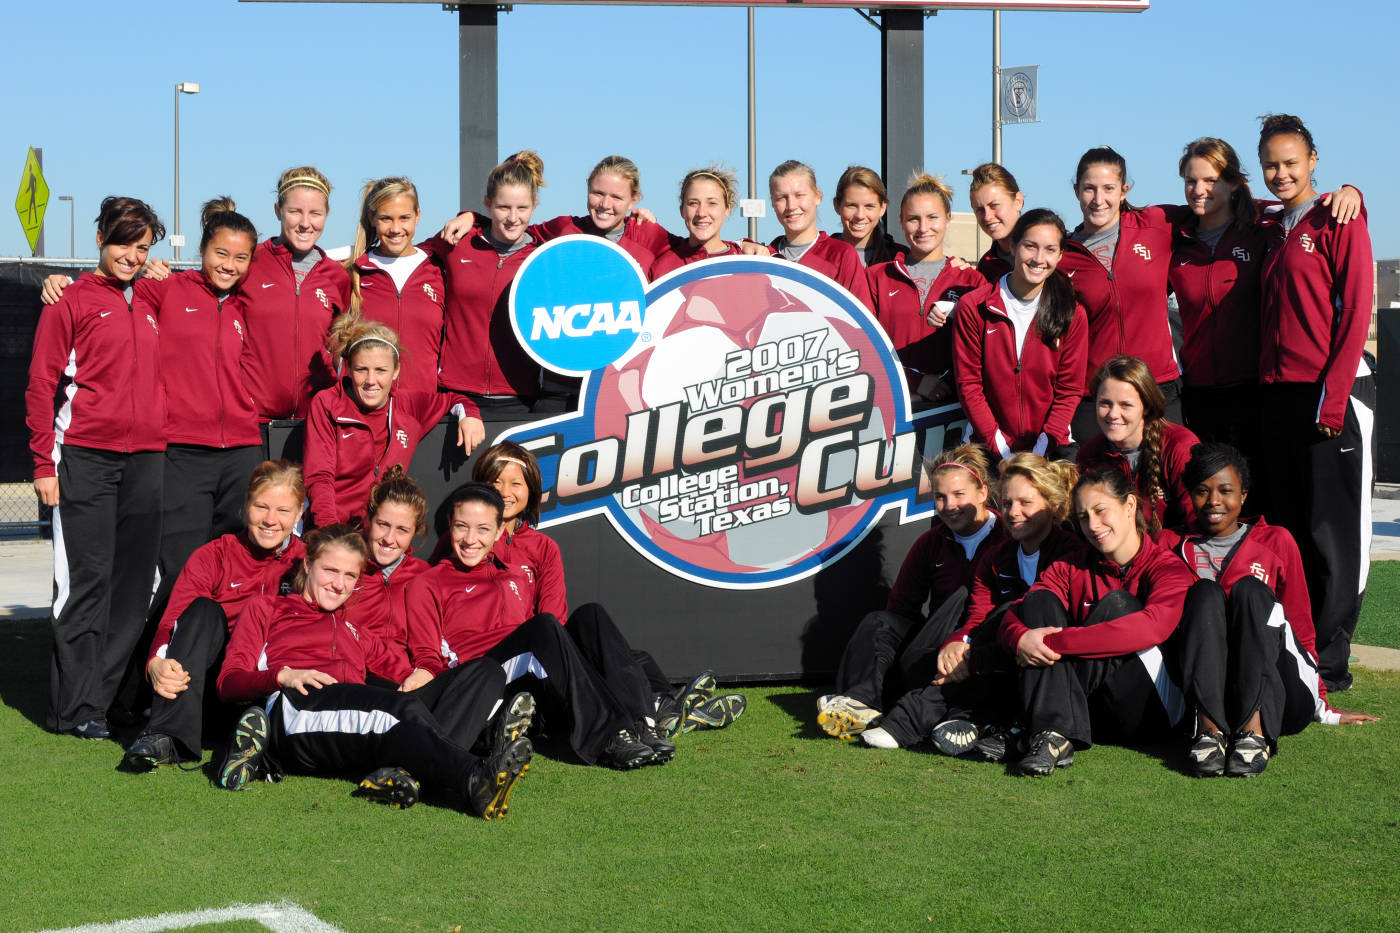 The 2007 Seminoles gather around the College Cup logo inside the Aggie Soccer Complex